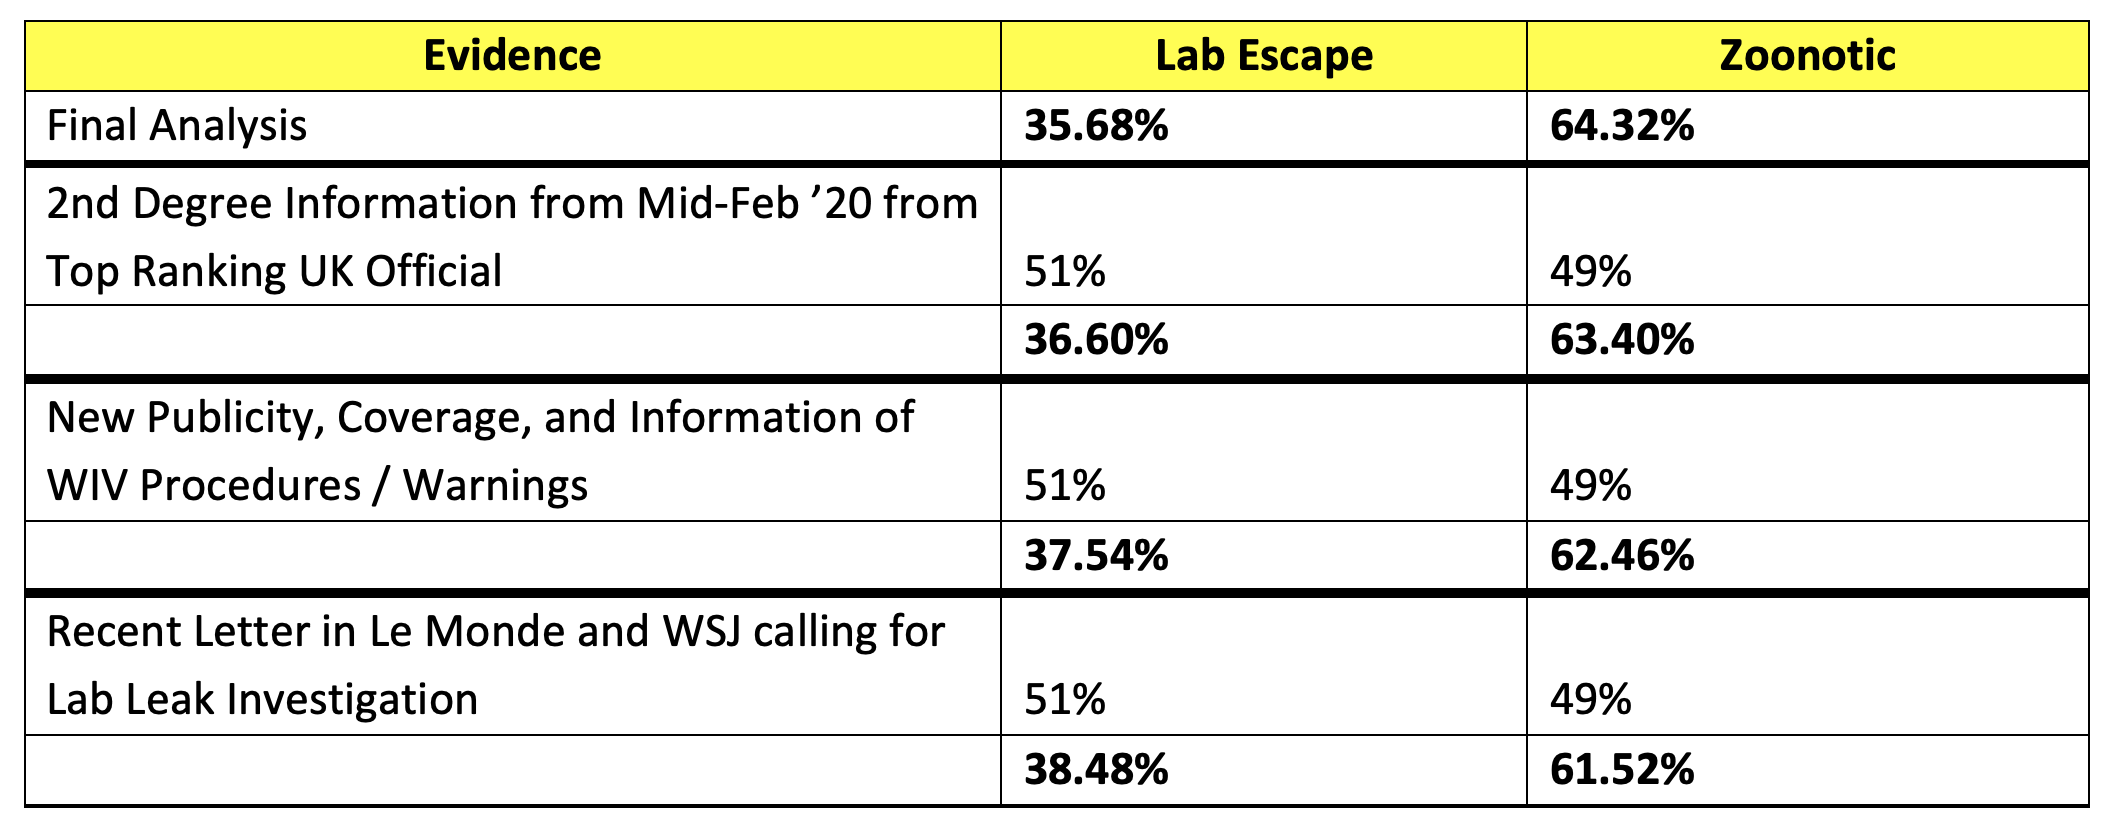 Table showing the final adjustments to our Covid-19 origin forecast and prediction. It shows 3 events that are resolved 51% in favor of Lab Escape, 49% against Zoonotic origin.